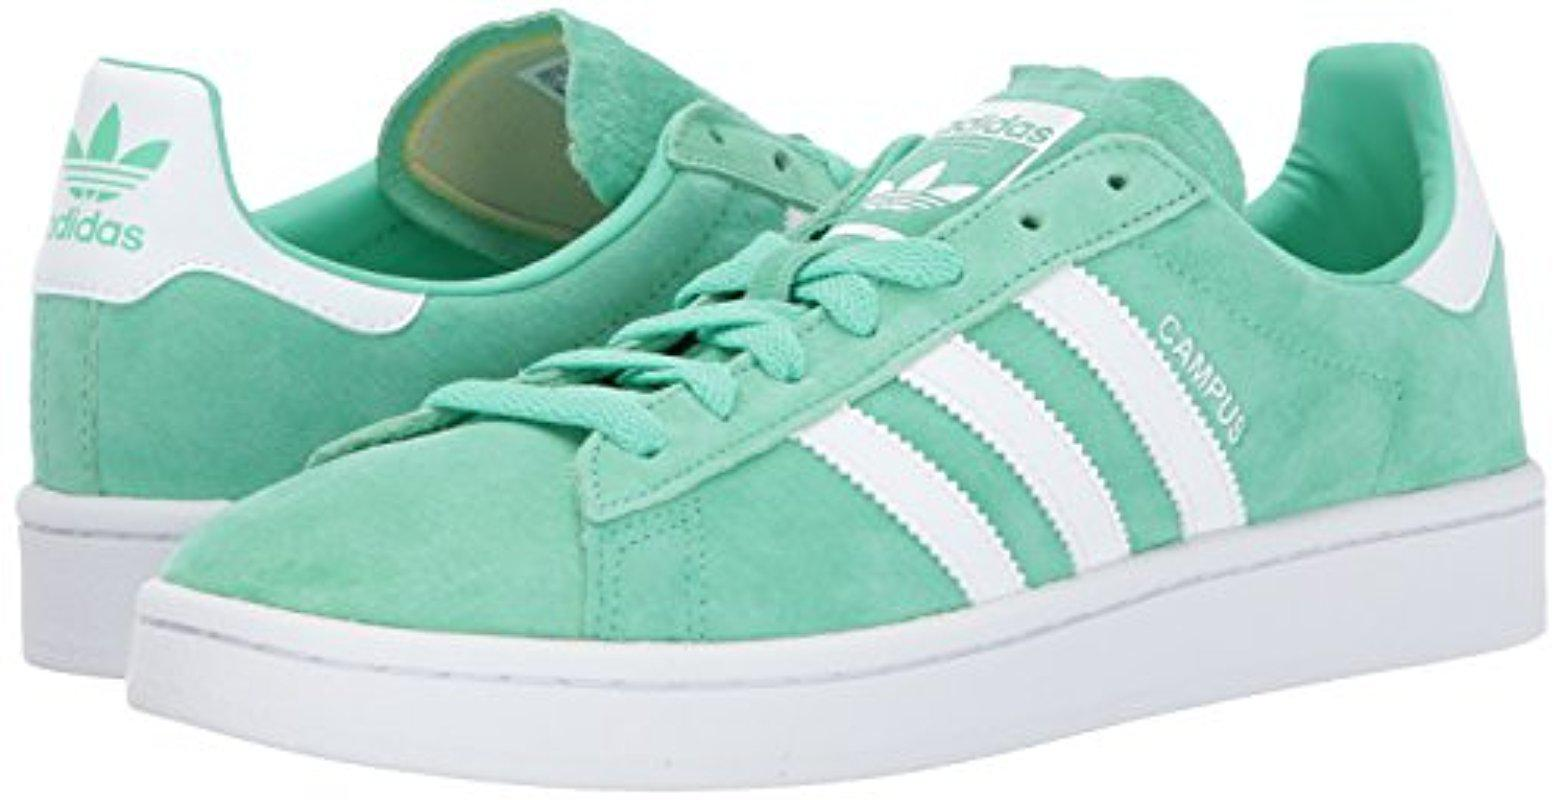 adidas Campus Sneakers in Green for Men